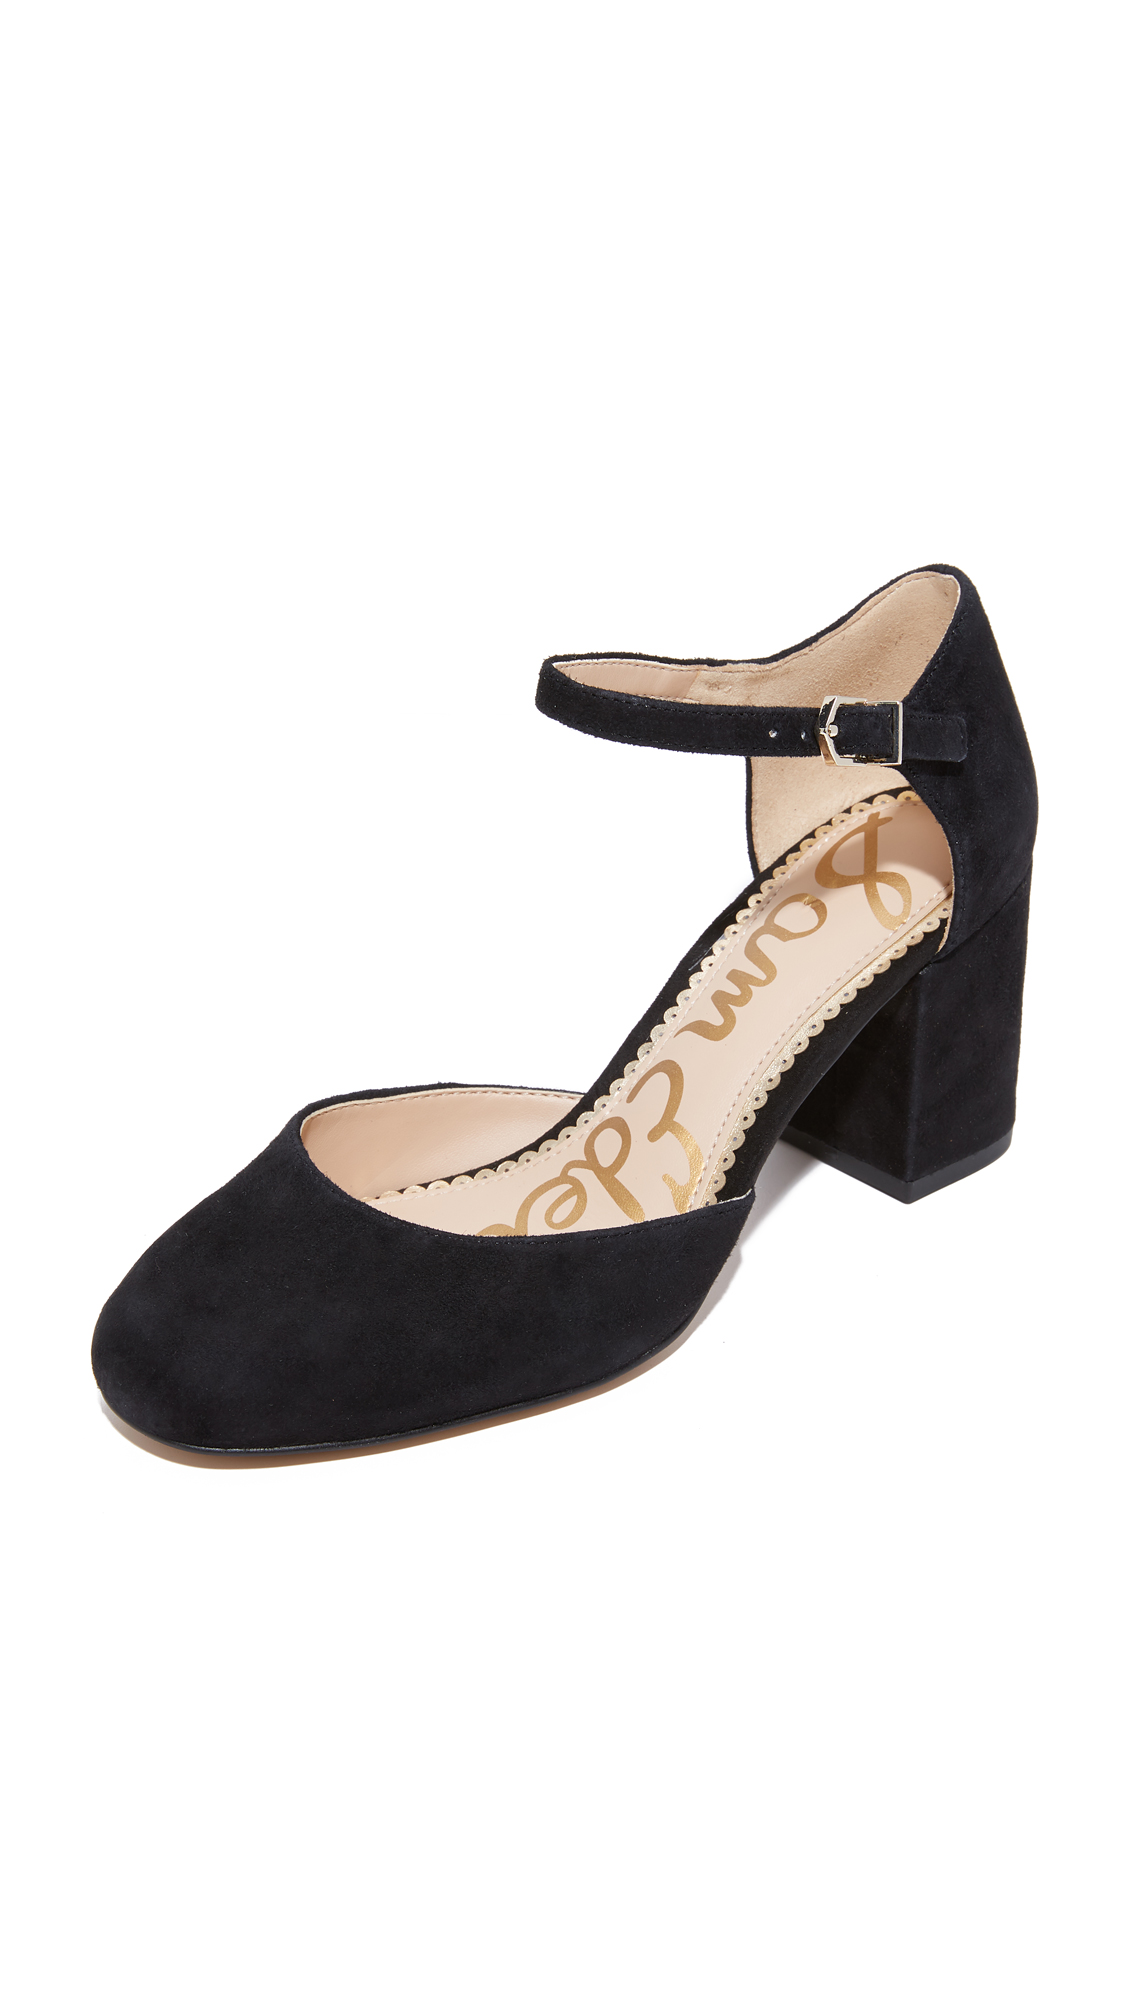 Sam Edelman Clover Pumps